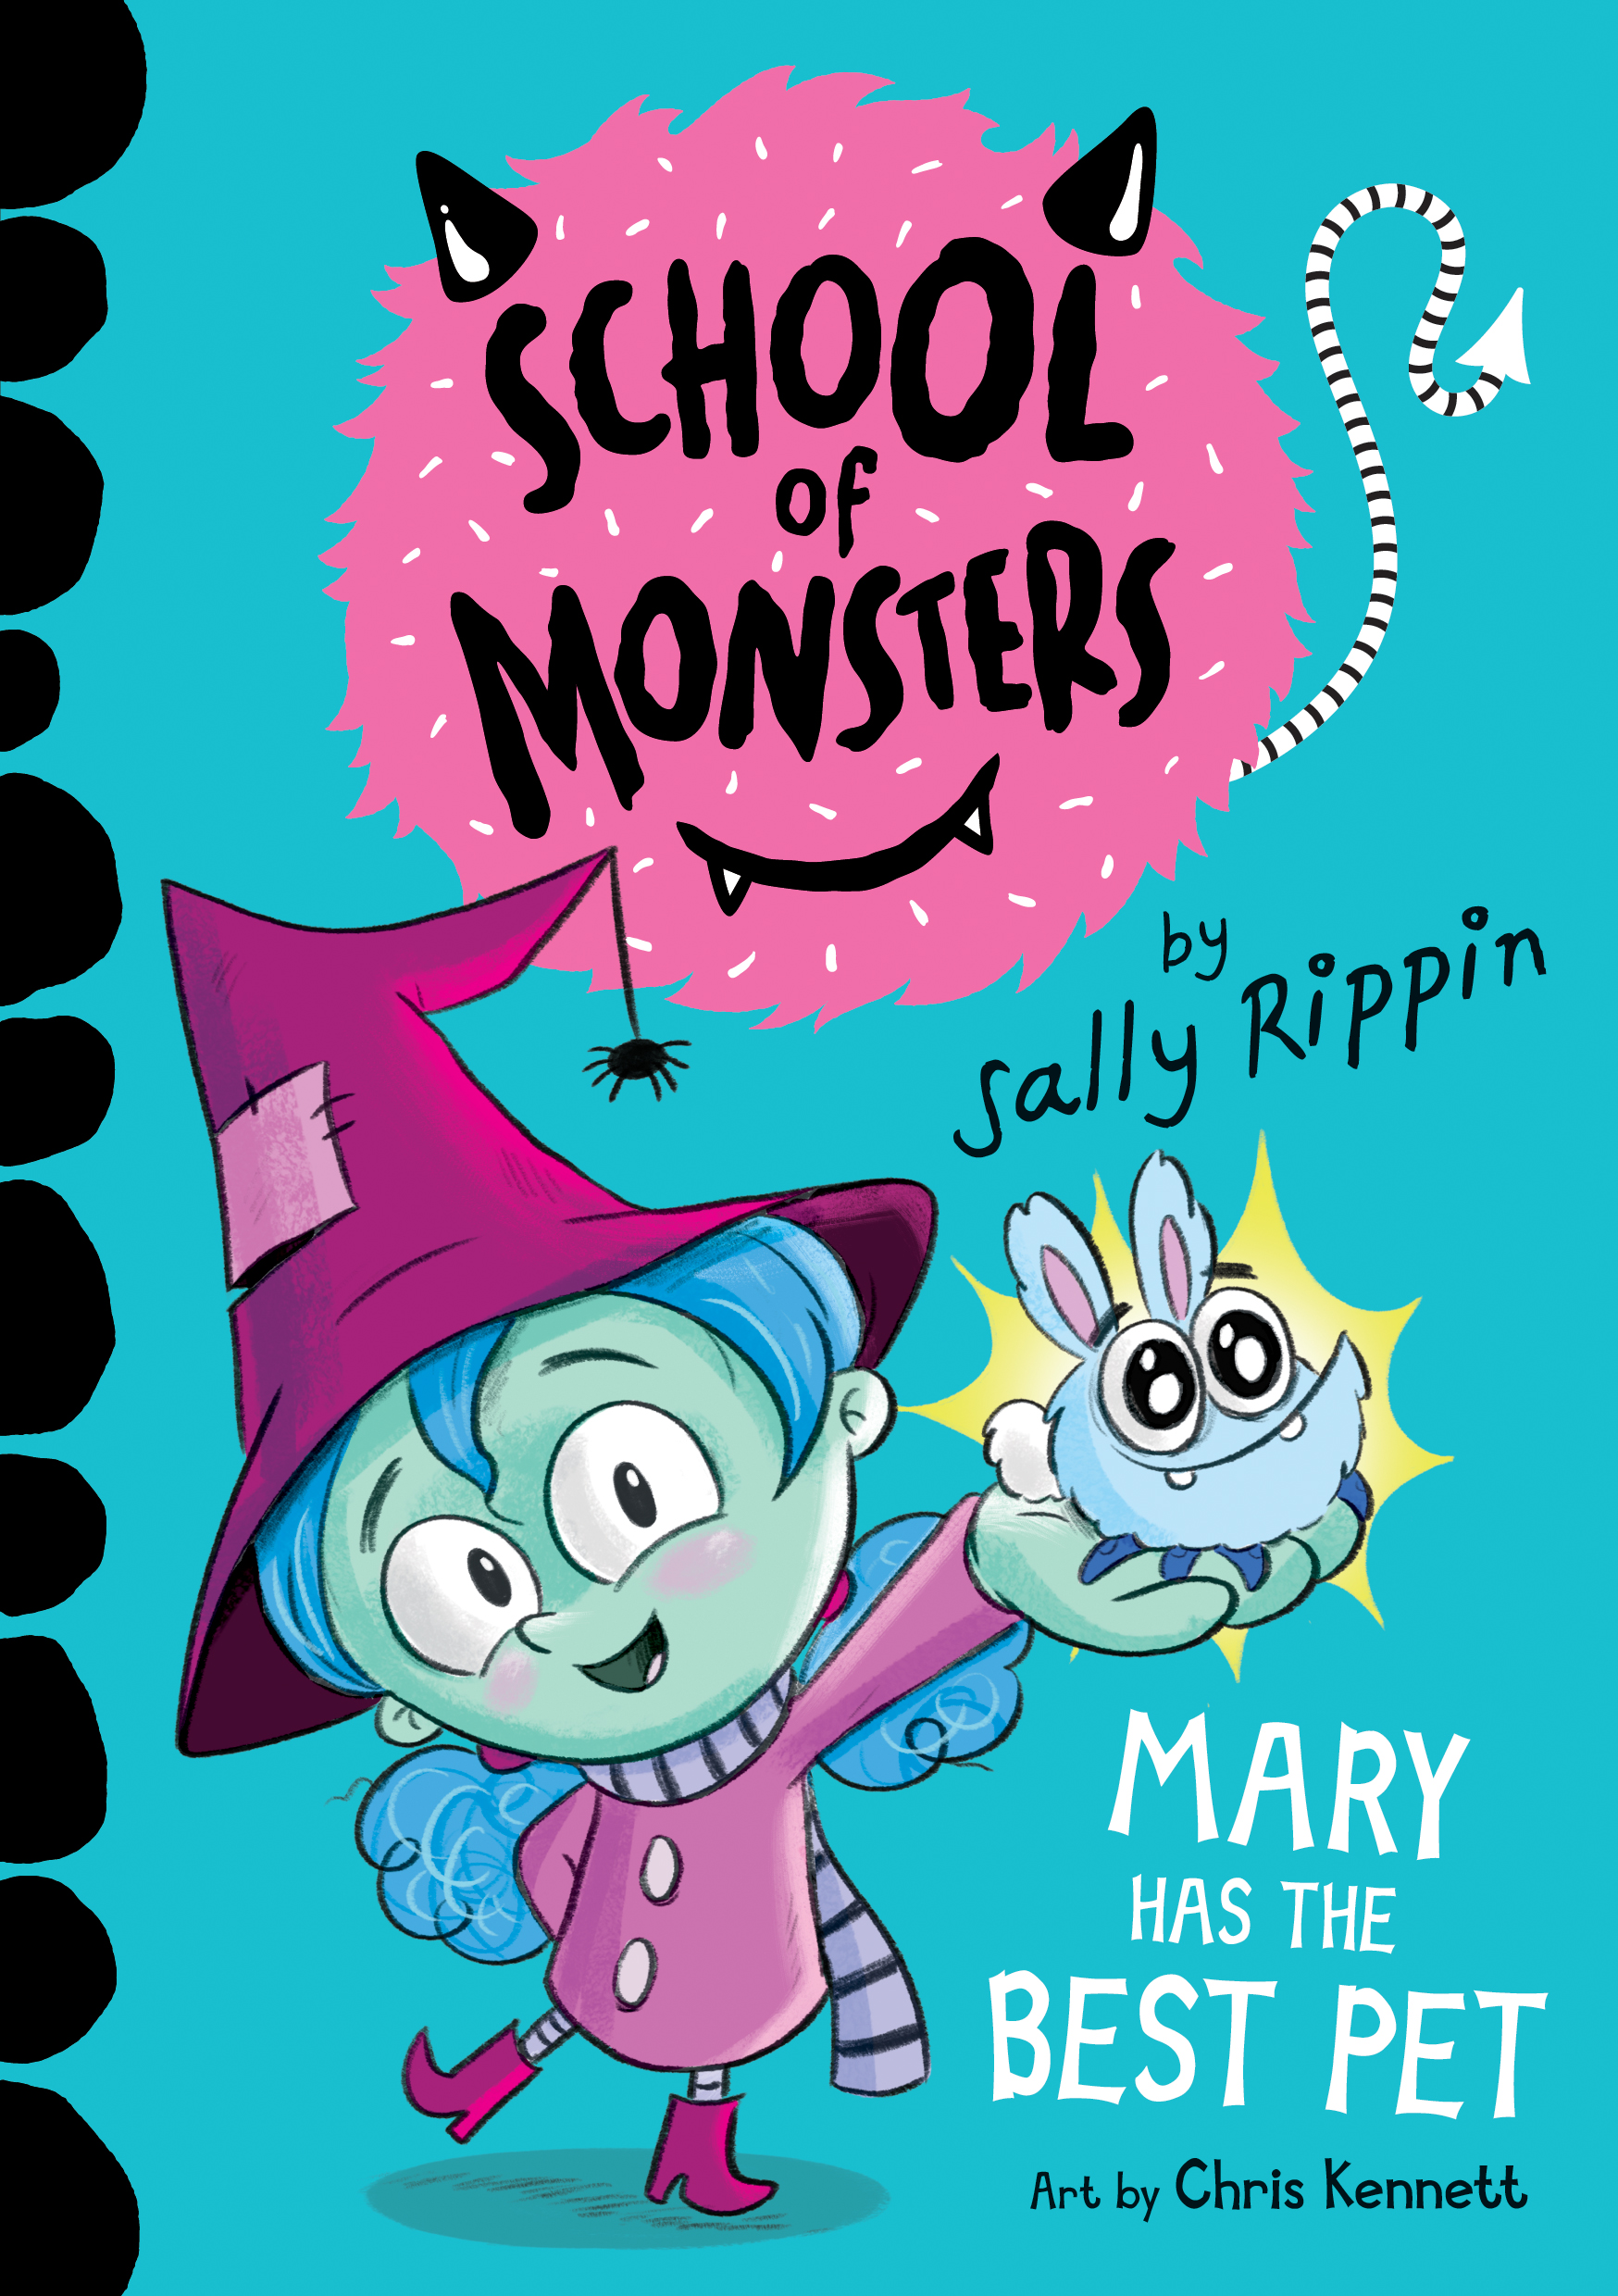 School of Monsters: Mary Has The Best Pet